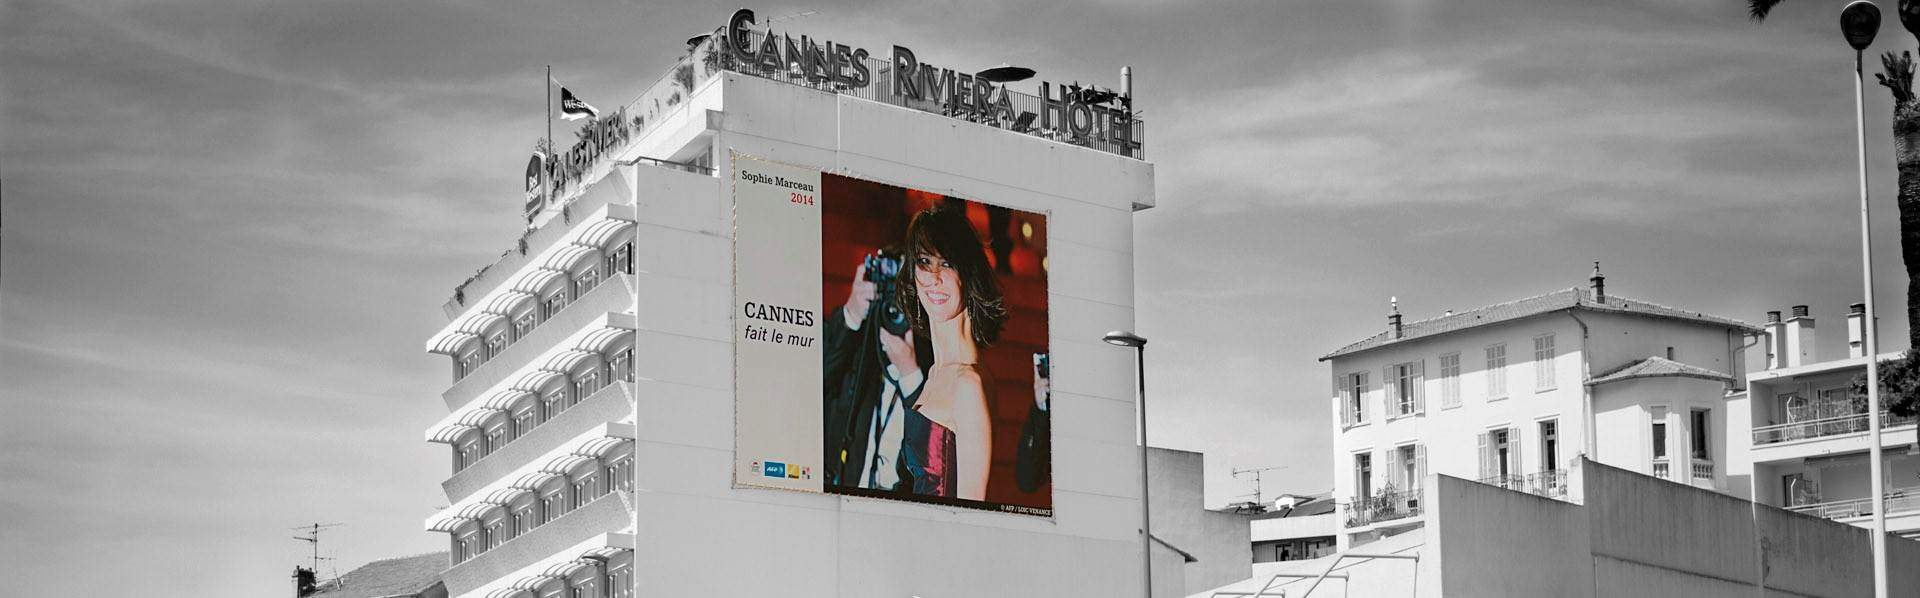 cannes festival affichage rues